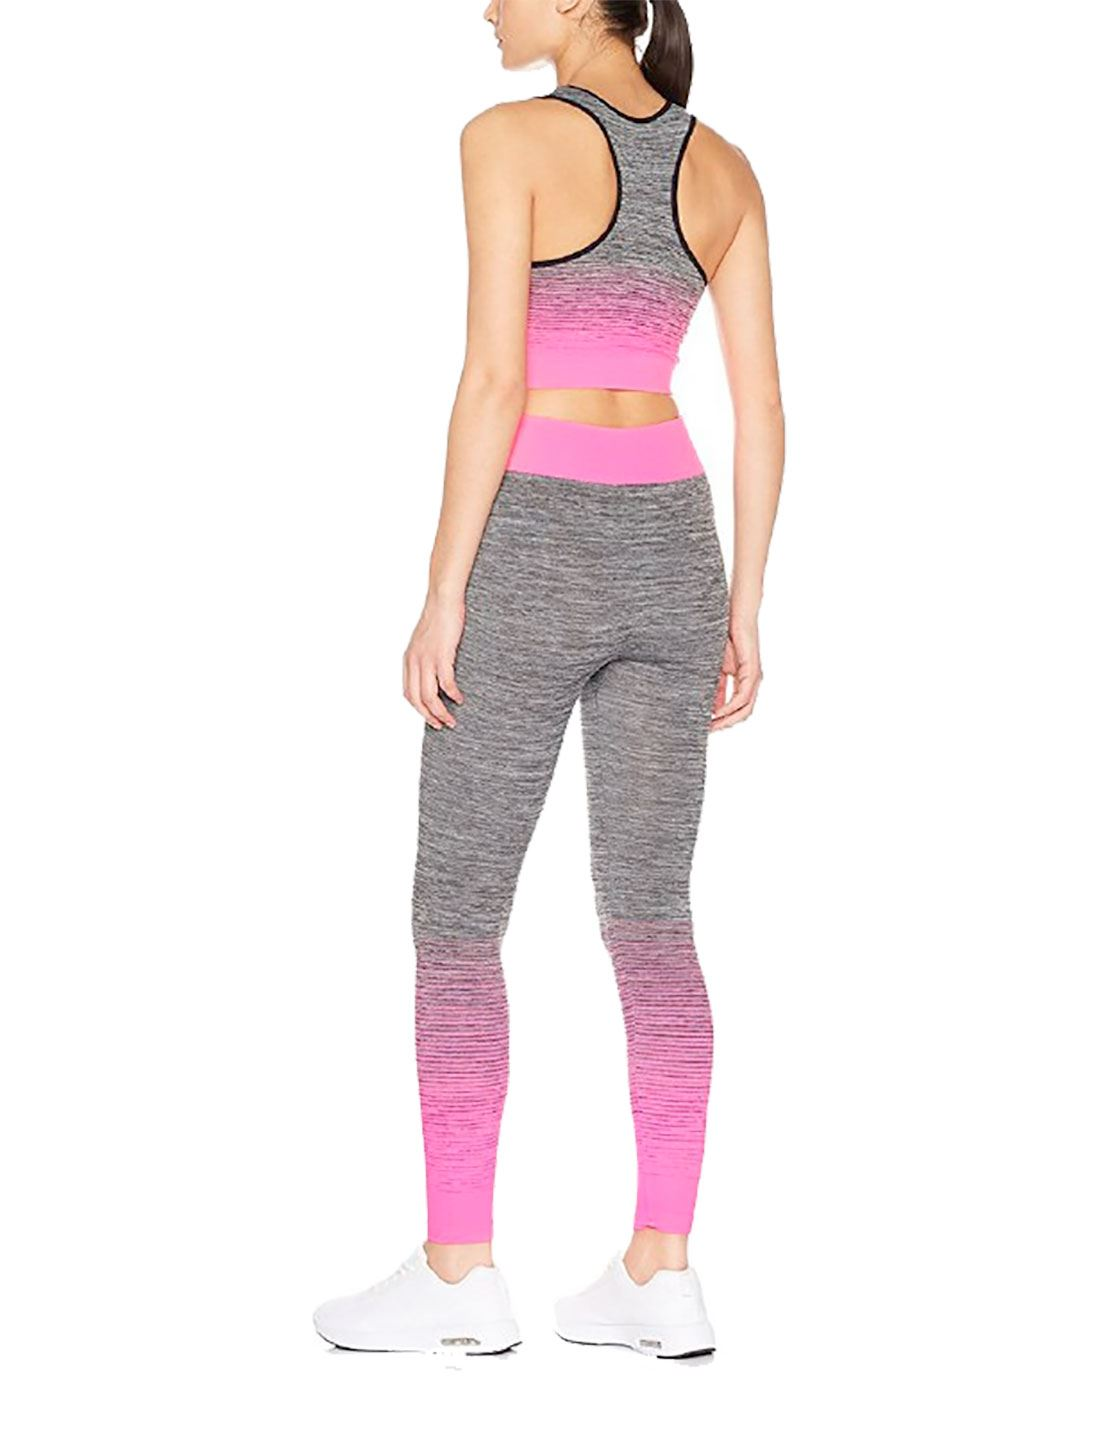 Ladies 2 Piece Sports Gym Wear Set Womens Exercise Yoga Crop Top And Leggings